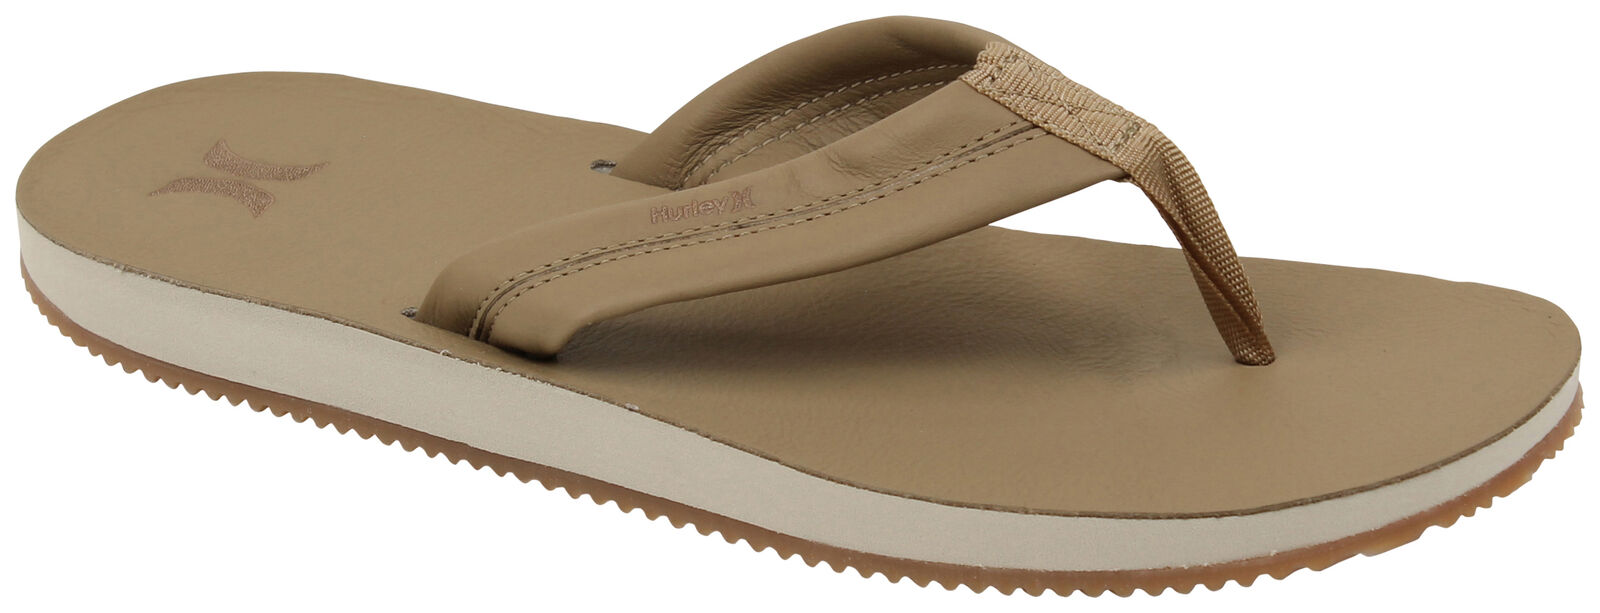 Hurley Lunar Leather Sandal - Canteen - New